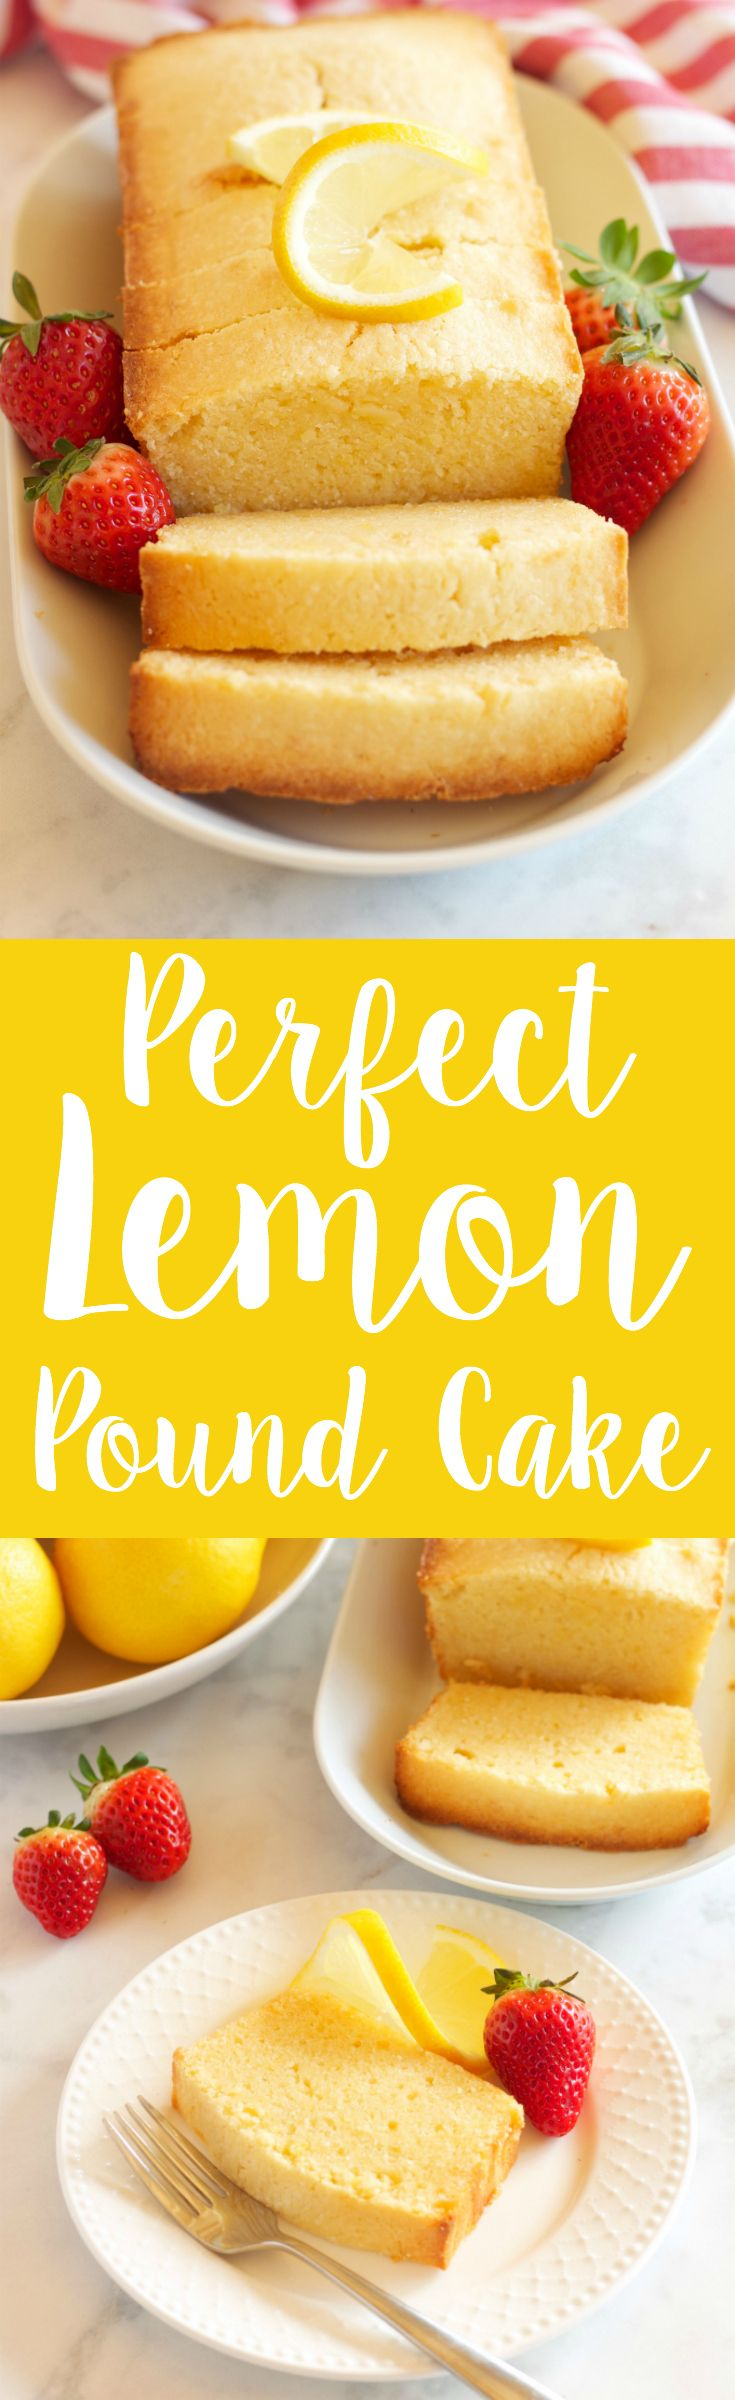 This Perfect Lemon Pound Cake is the ultimate no-fail Spring dessert recipe that's moist and tender and made with fresh lemons! Recipe from thebusybaker.ca! via @busybakerblog